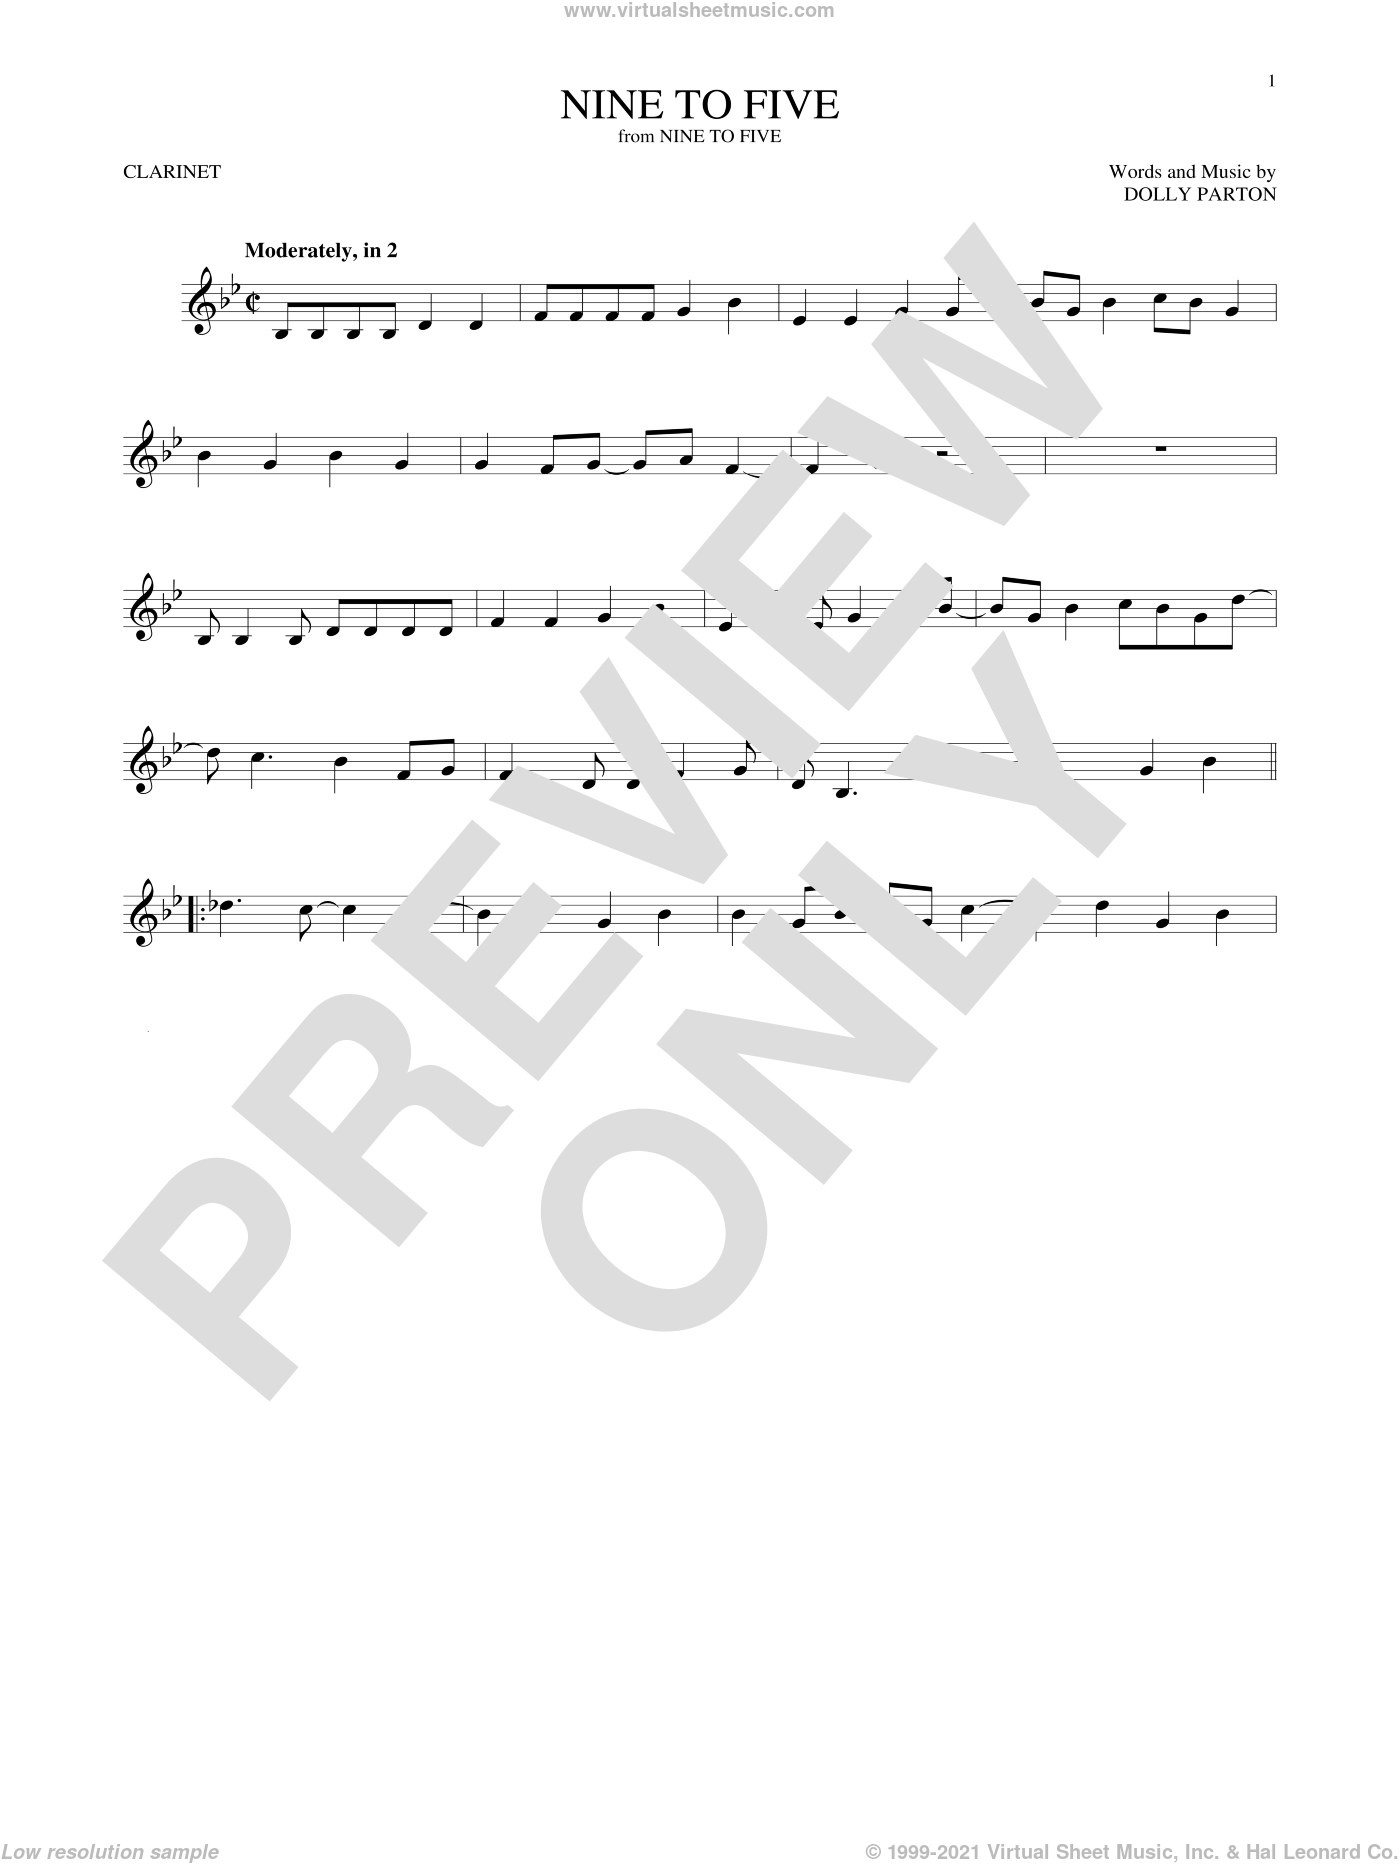 Nine To Five sheet music for clarinet solo by Dolly Parton, intermediate skill level